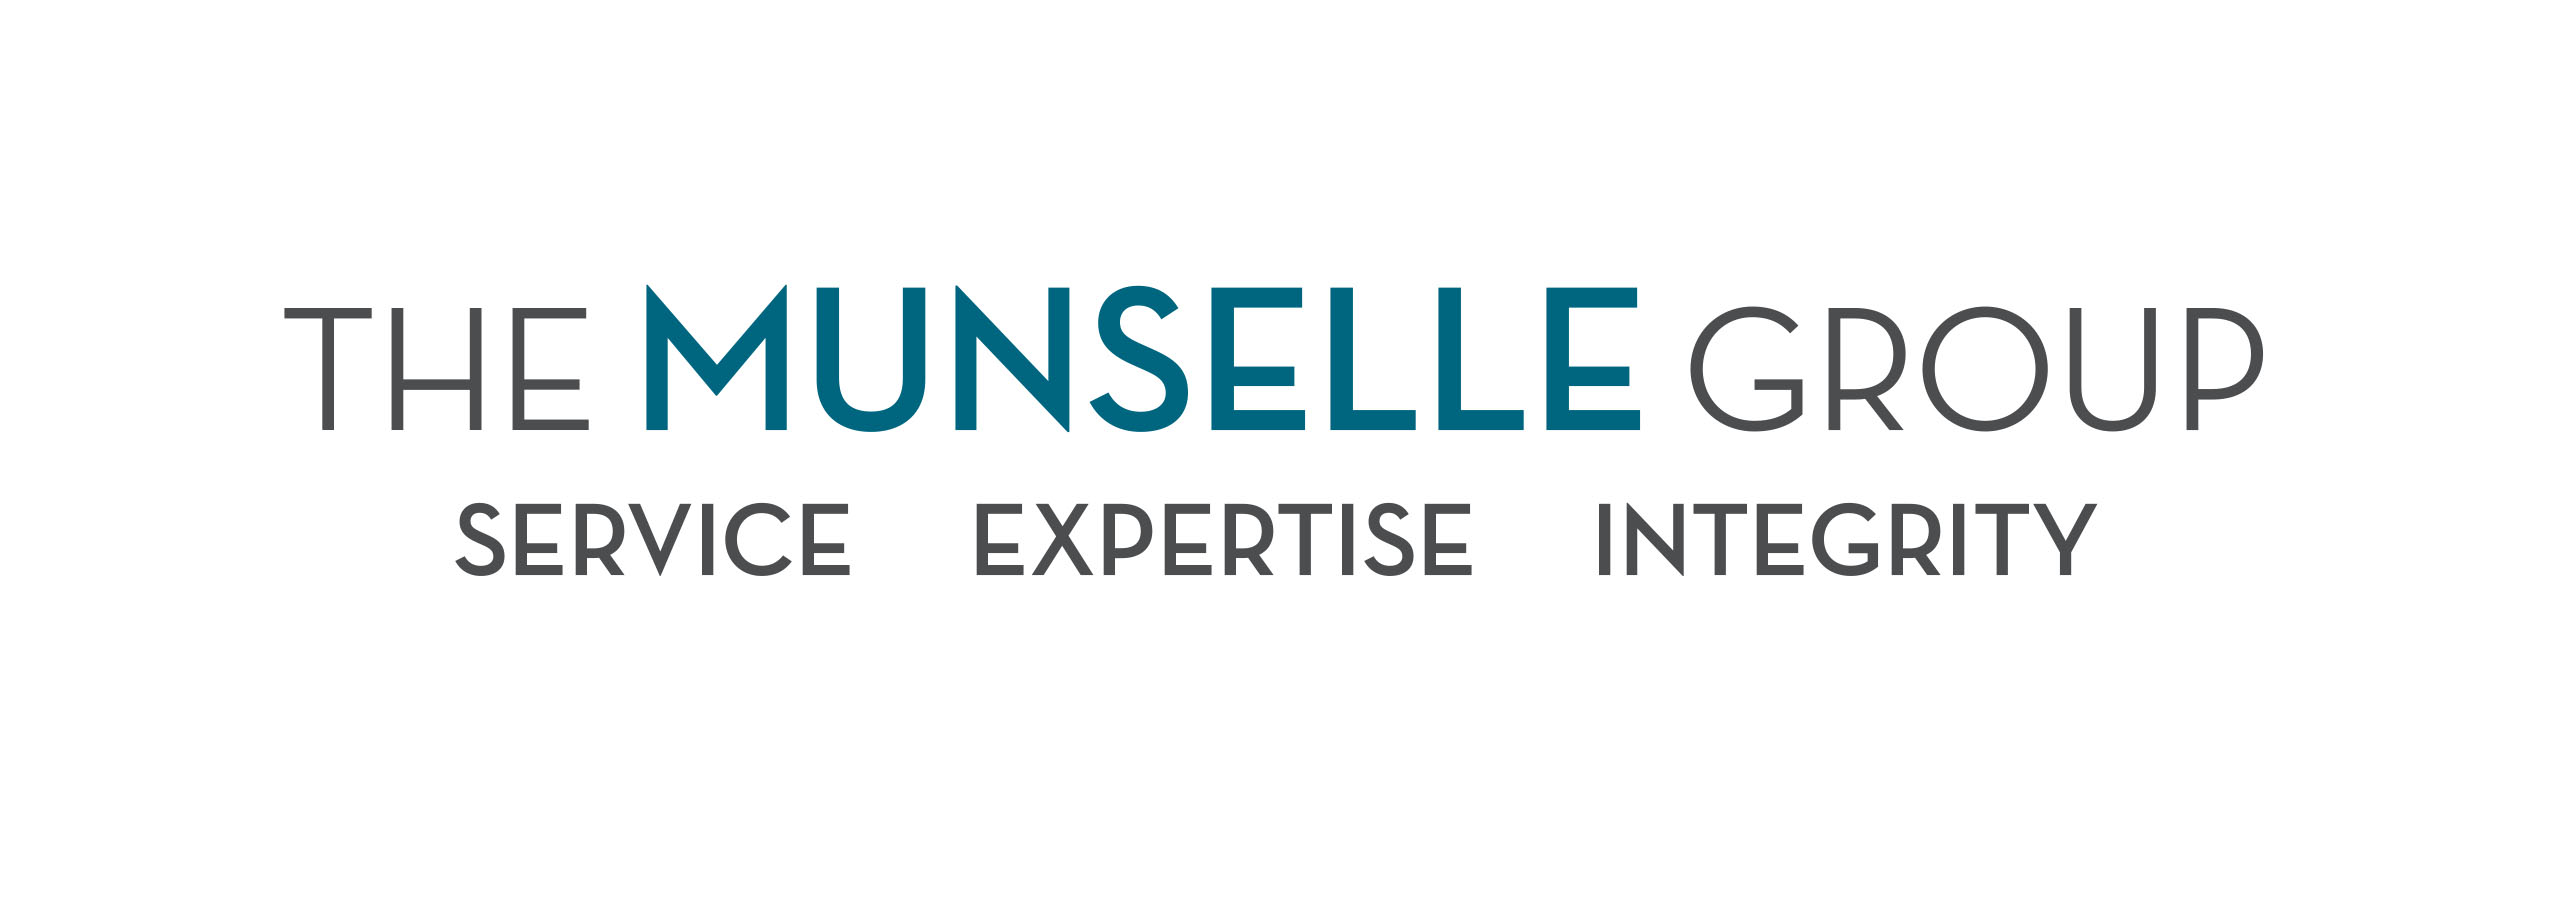 The Munselle Group/COMPASS logo